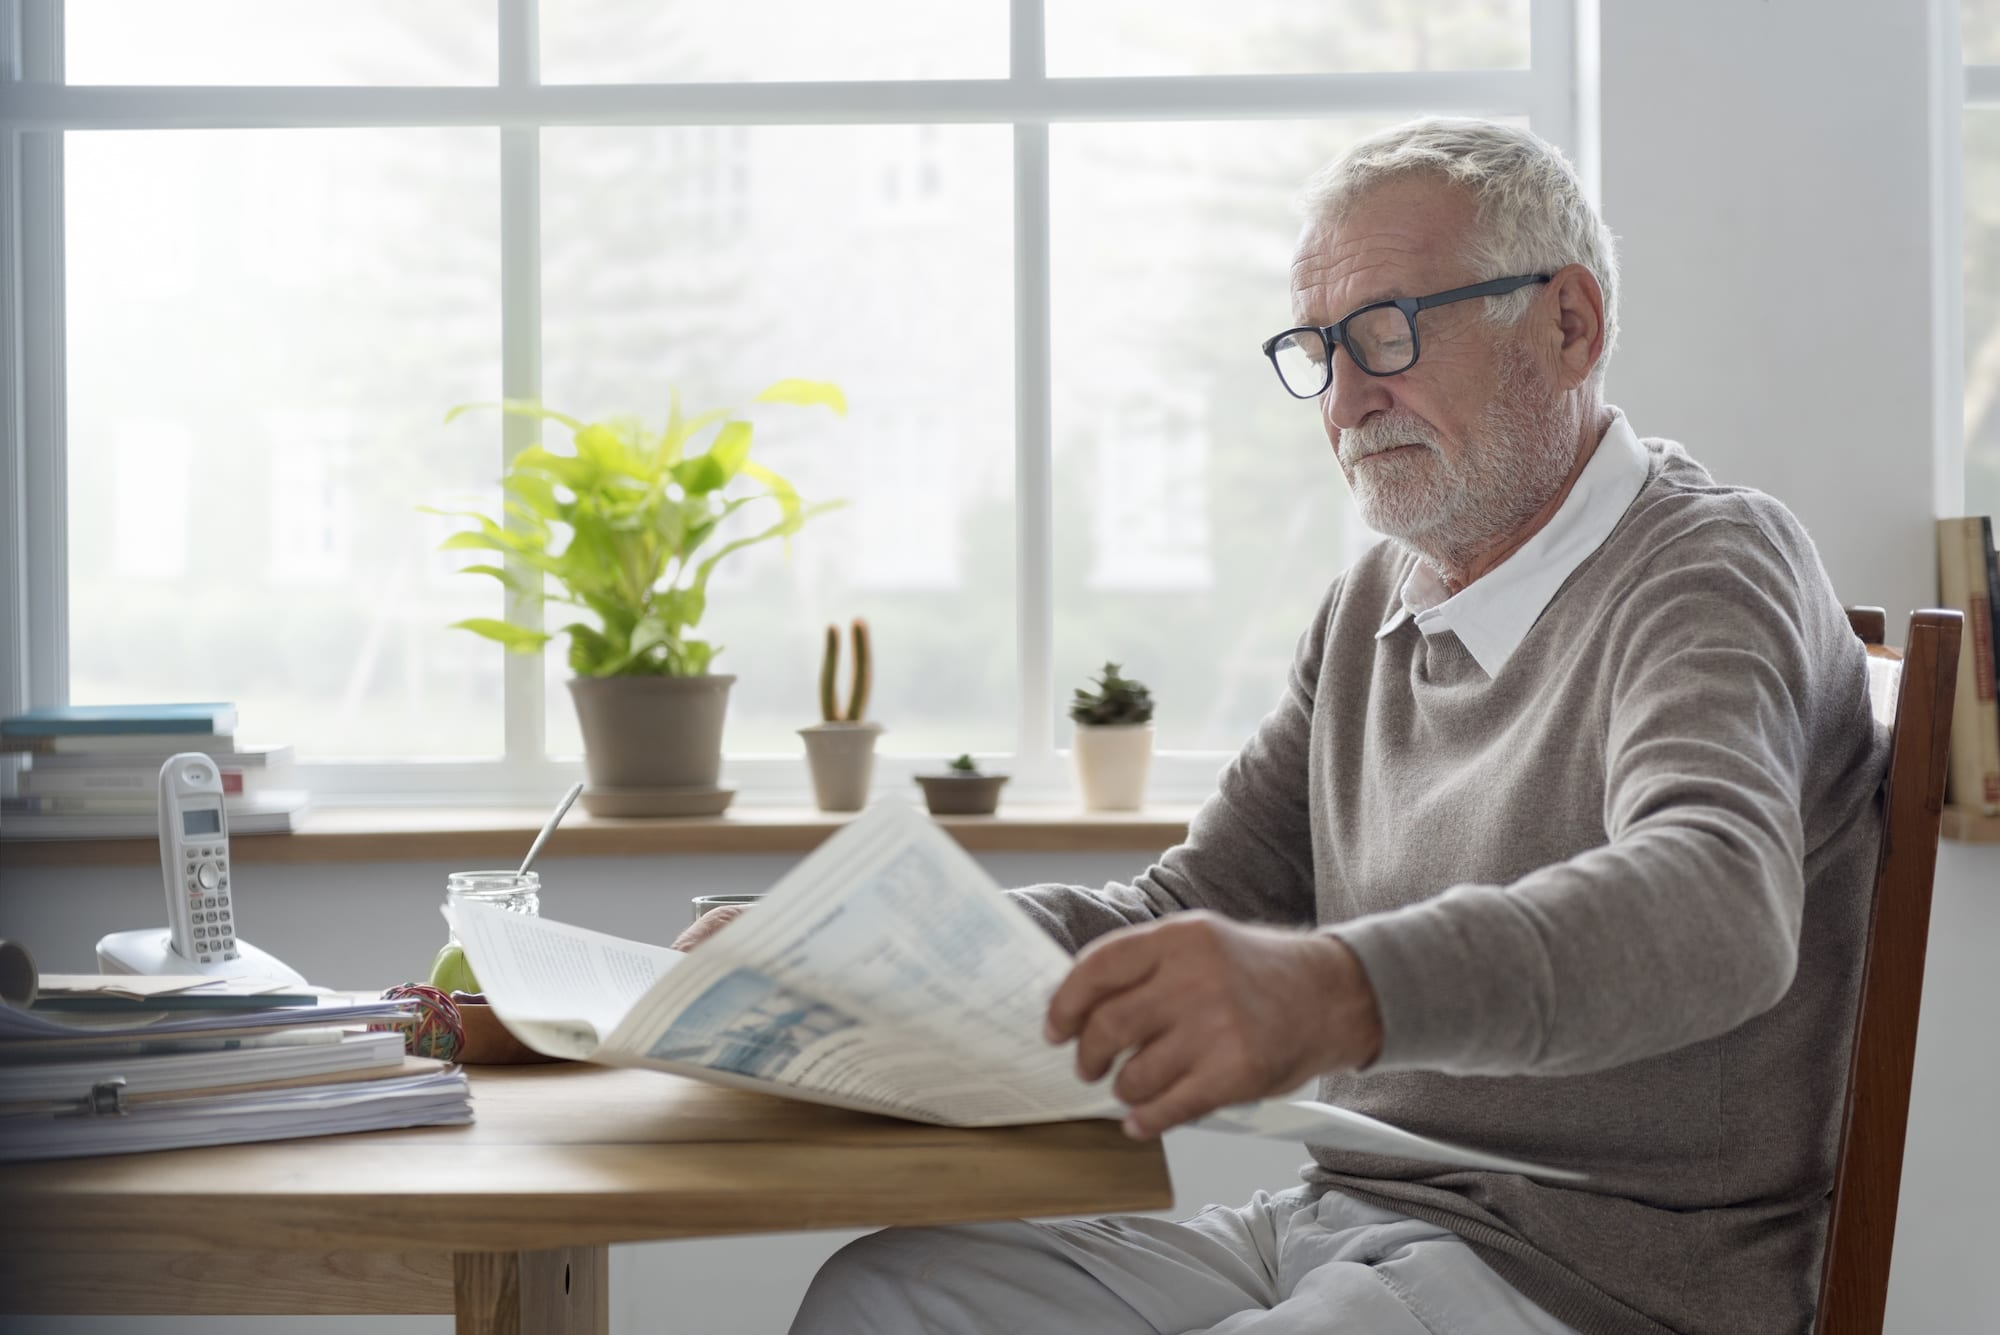 SEnior Adult Readding Newspaper Leisure Concept | Clarity Hearing